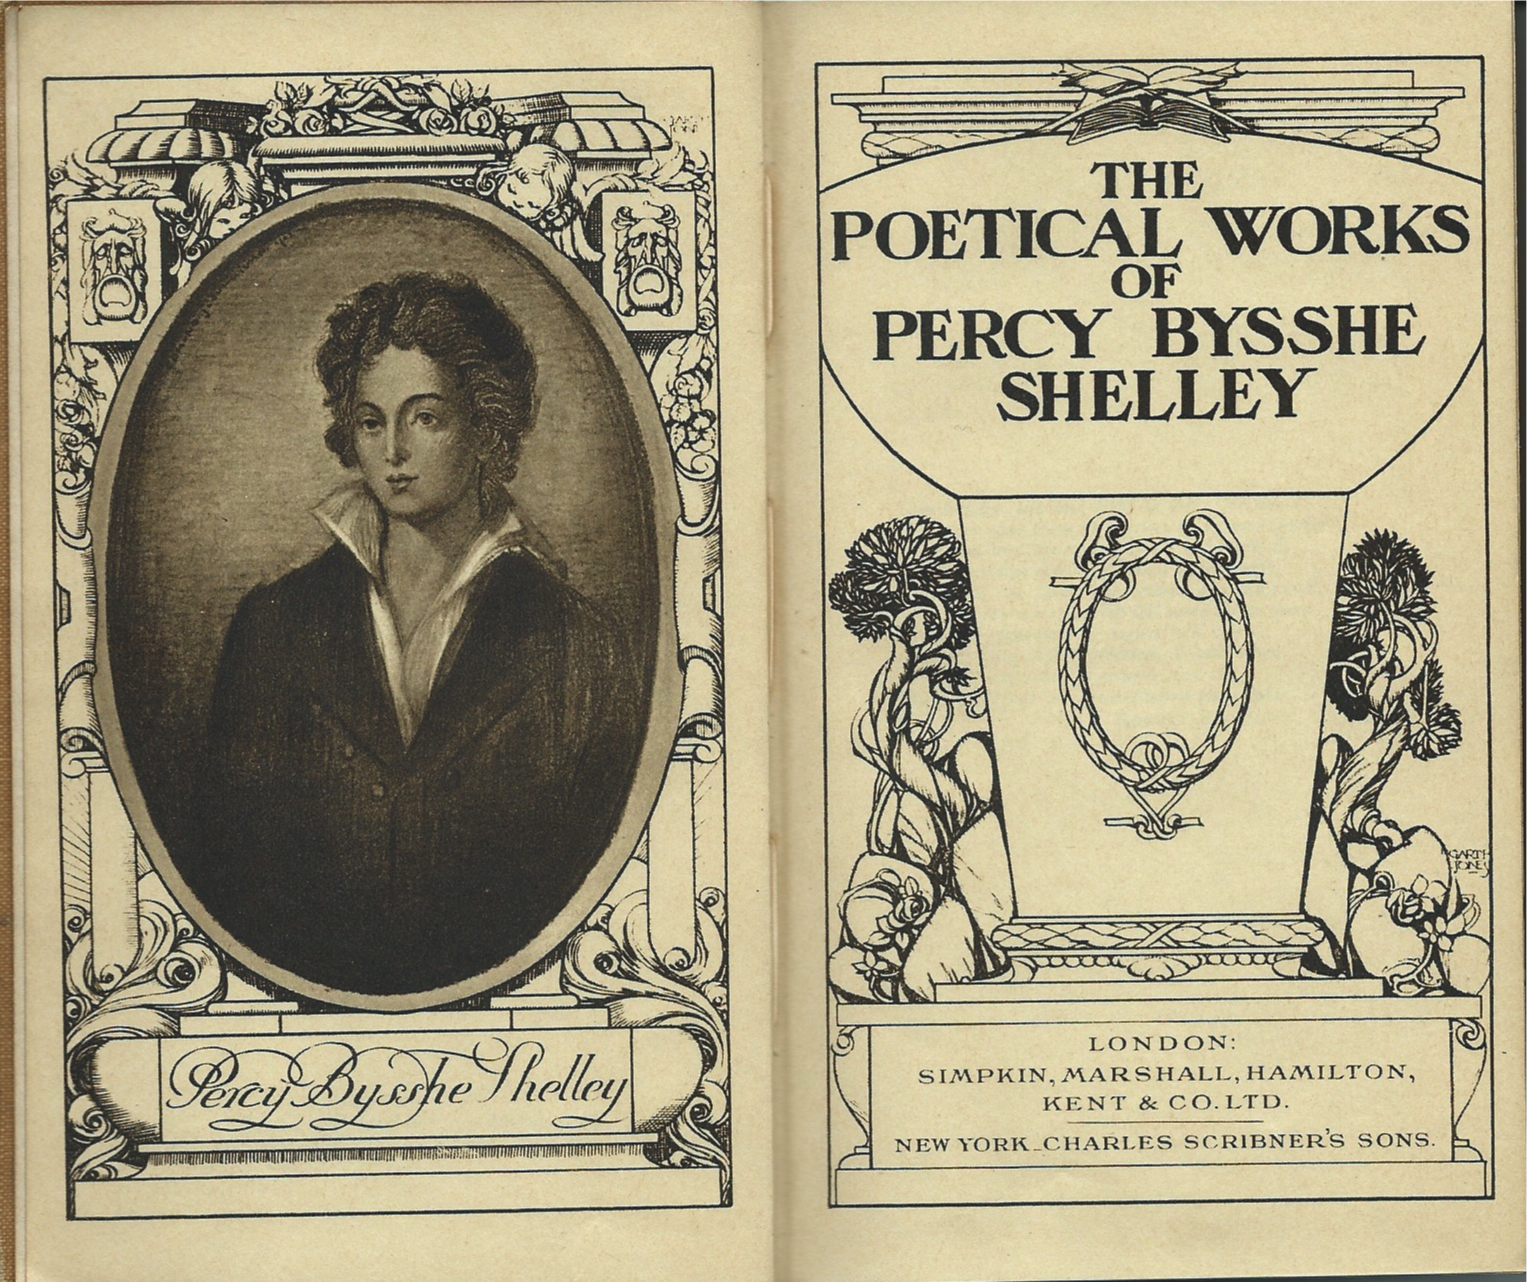 Percy bysshe shelley quotes quotesgram - My Edition Of Shelley